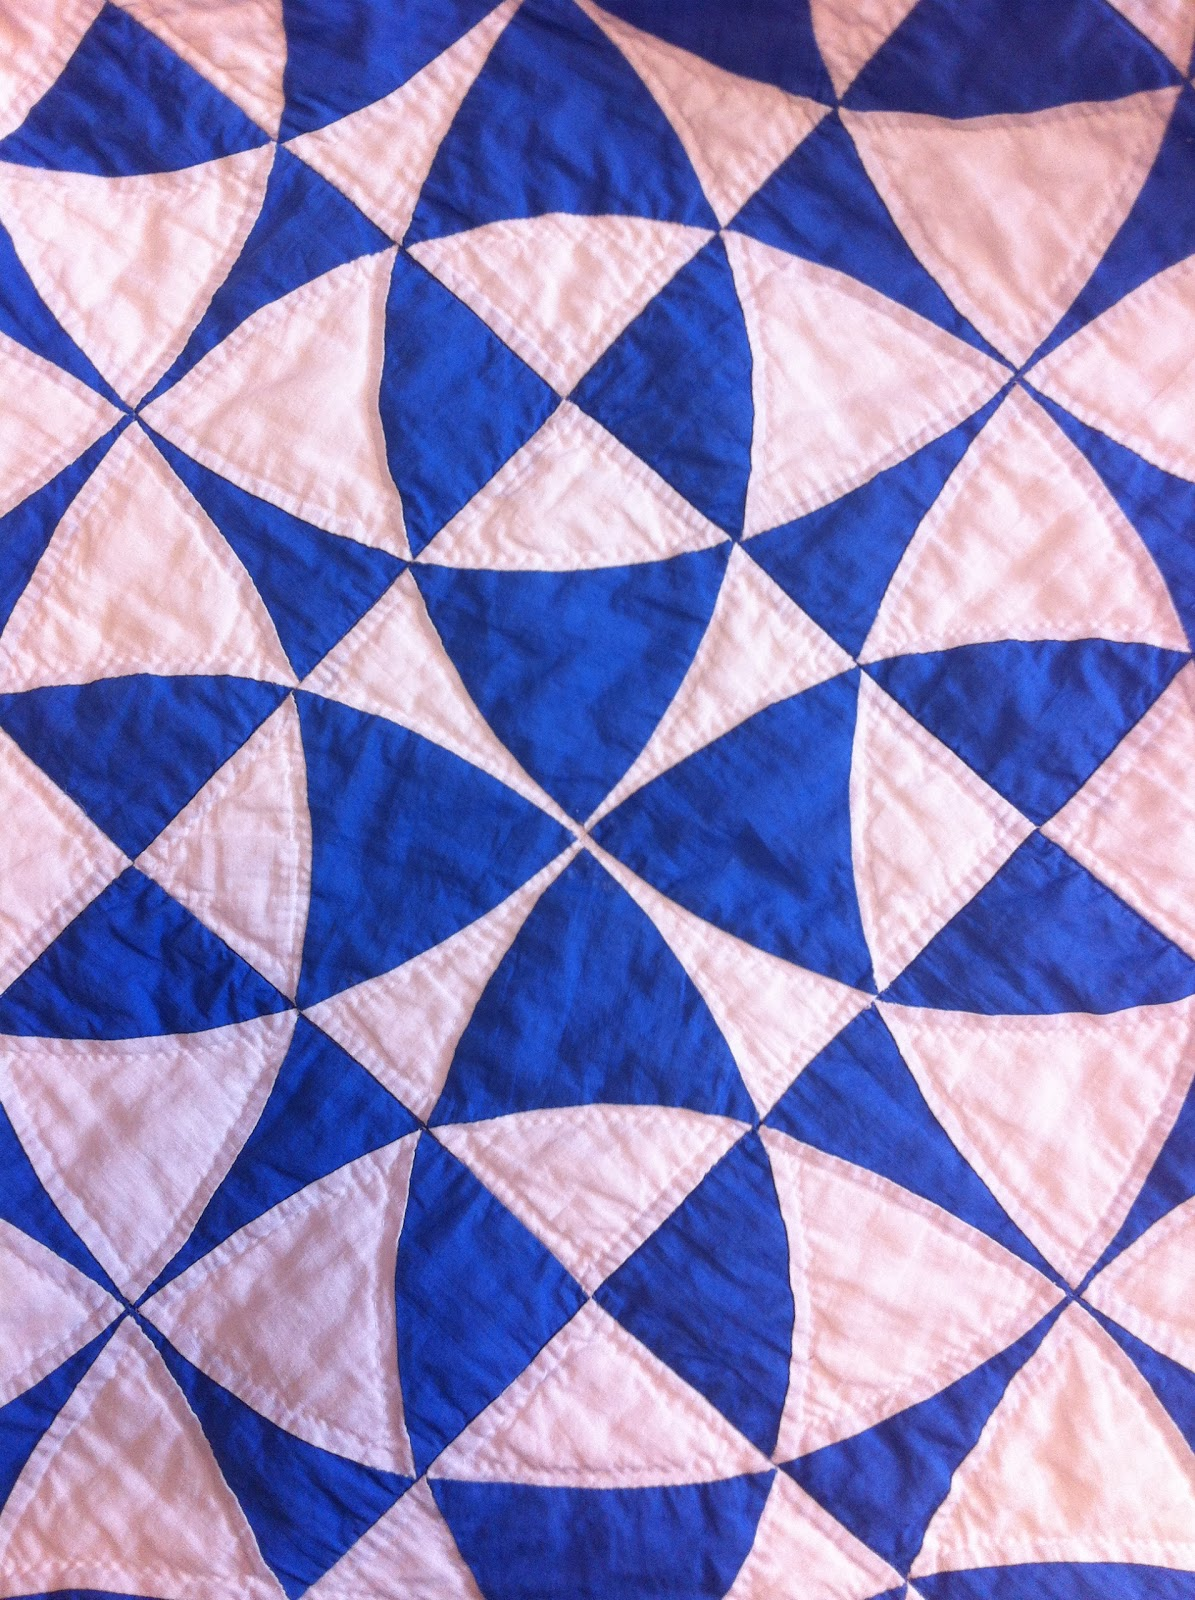 A Quilter by Night: Winding Ways : winding ways quilt pattern - Adamdwight.com